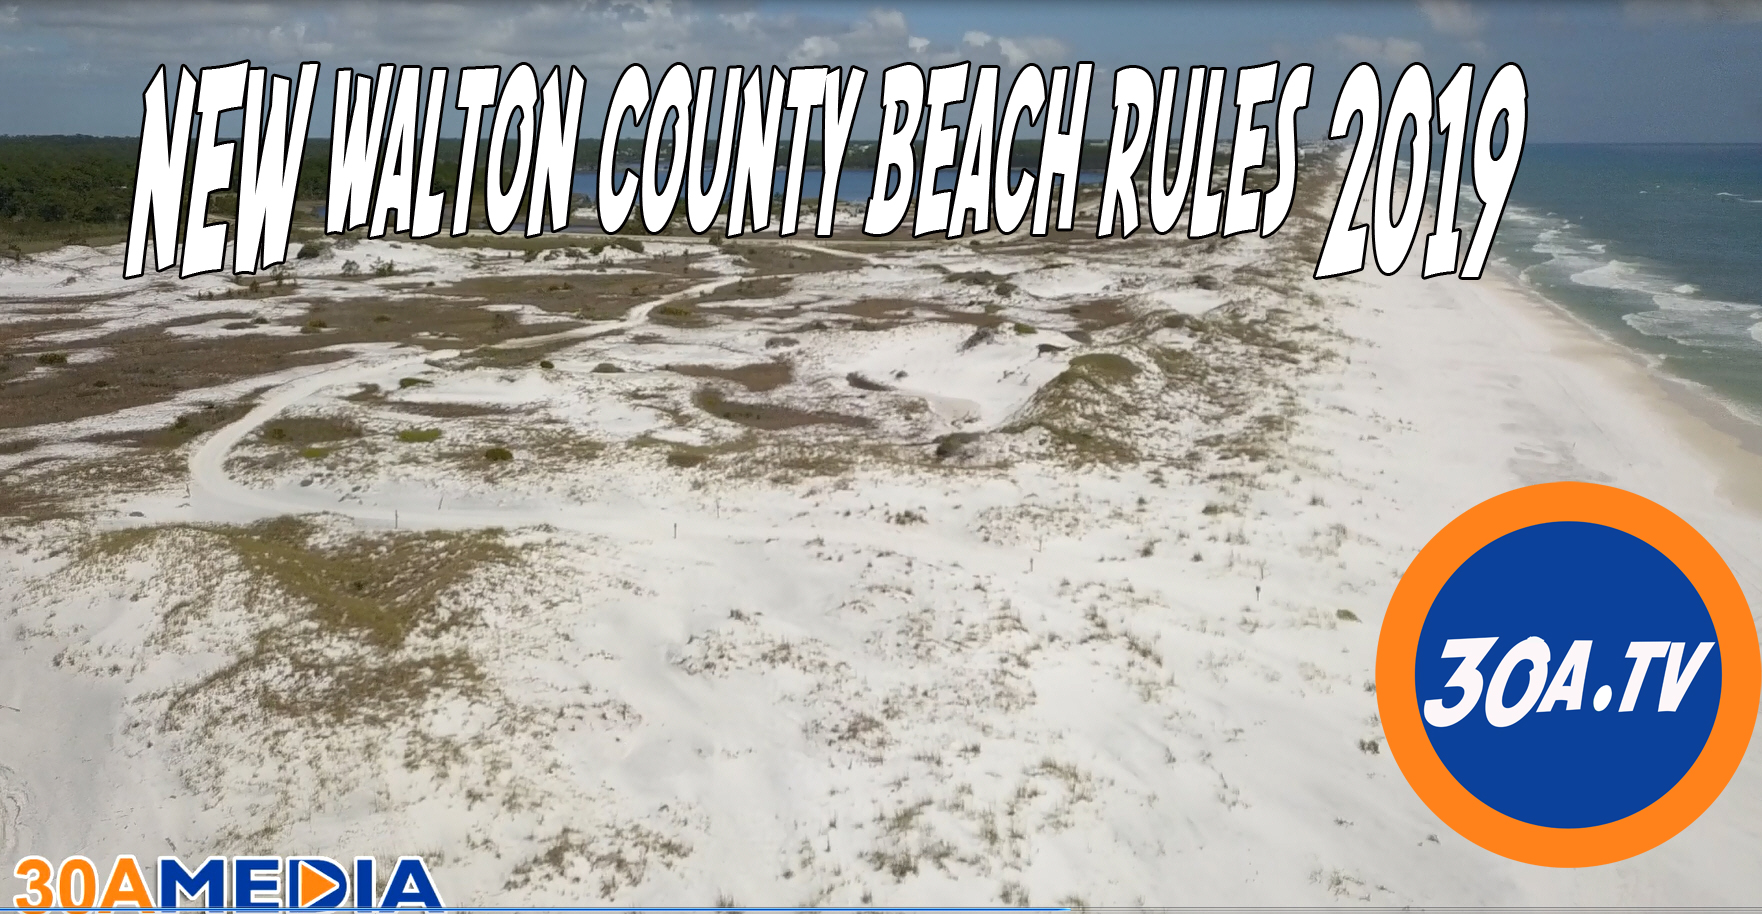 Walton County Board of County Commissioners Authorize Beach Code Changes